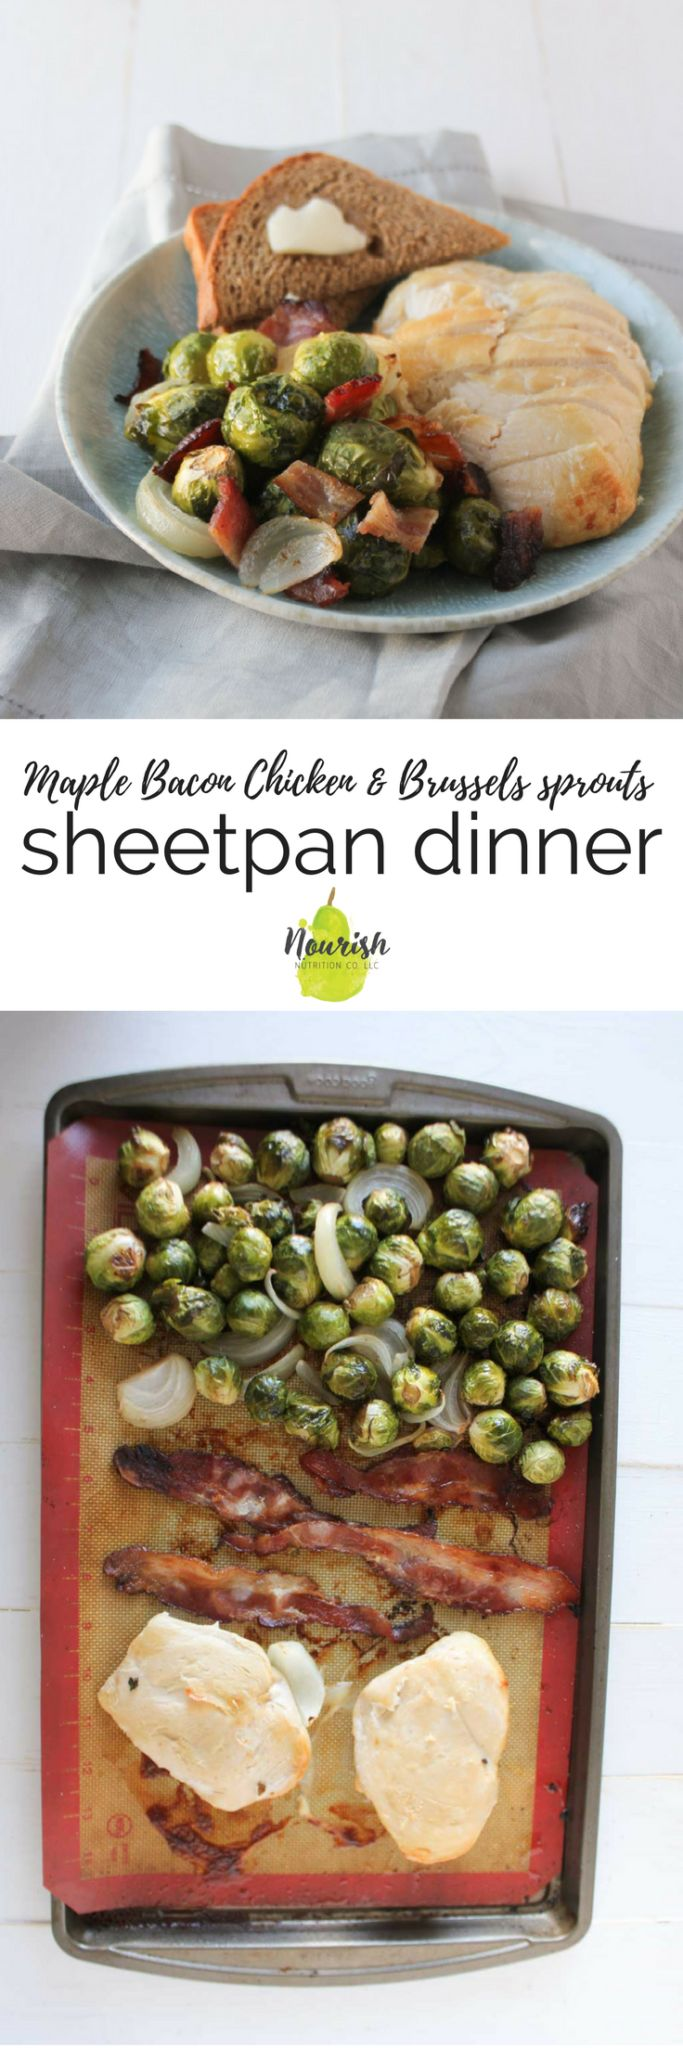 Maple Bacon Chicken and Brussels Sprouts Sheet Pan Dinner via @nourishnutrico